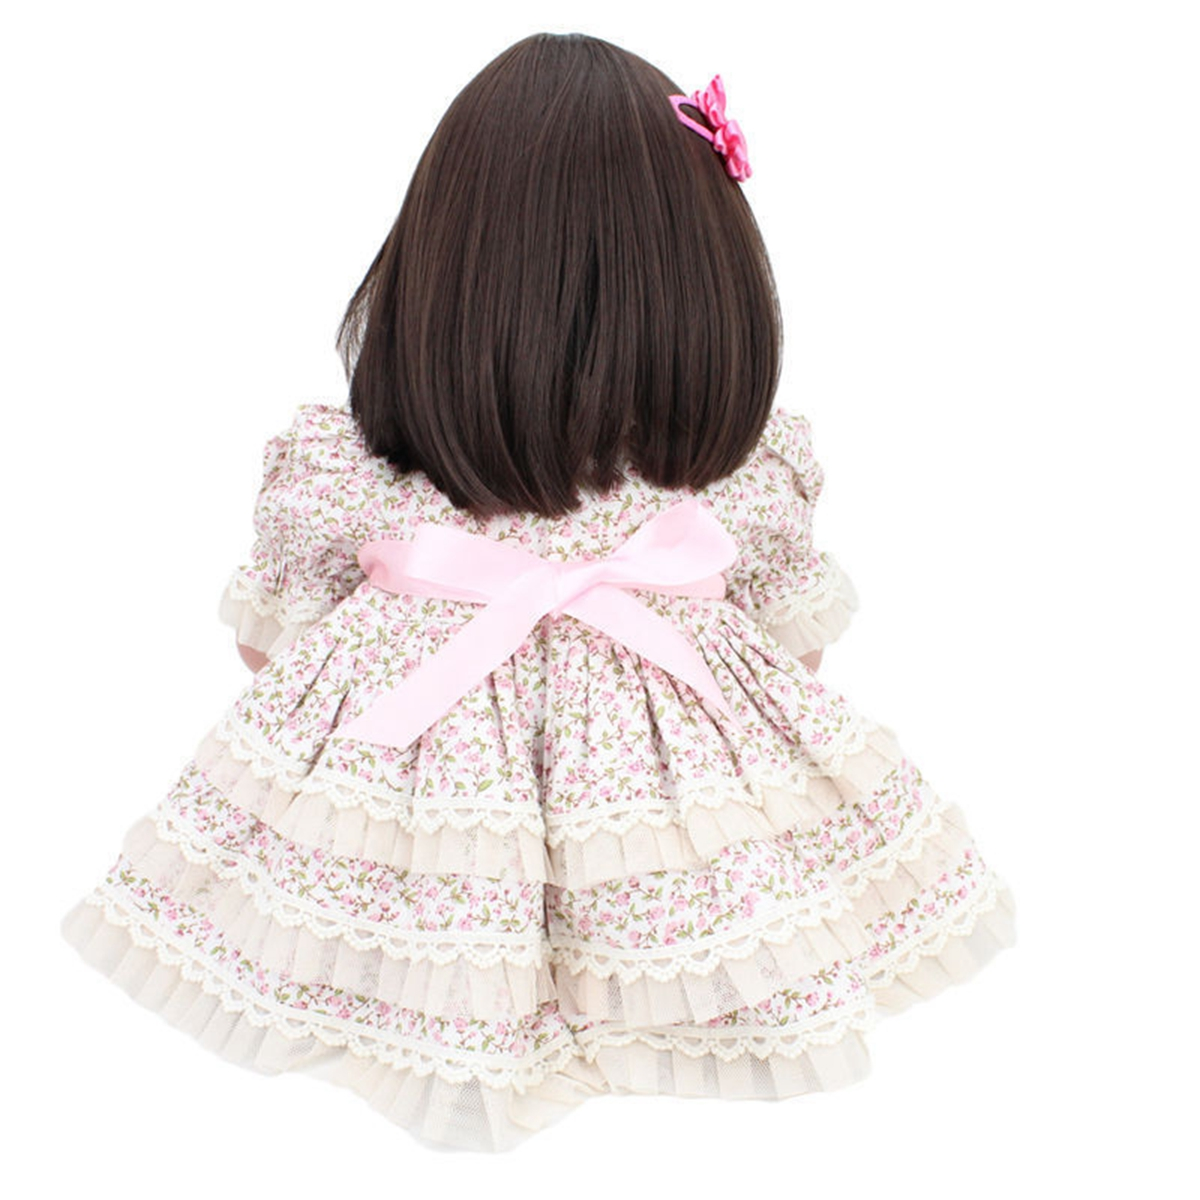 NPK 20 Inch 51cm Reborn Baby Newborn Soft Silicone Doll Handmade Lifelike Baby Girl Dolls Play House Toys Birthday Gift